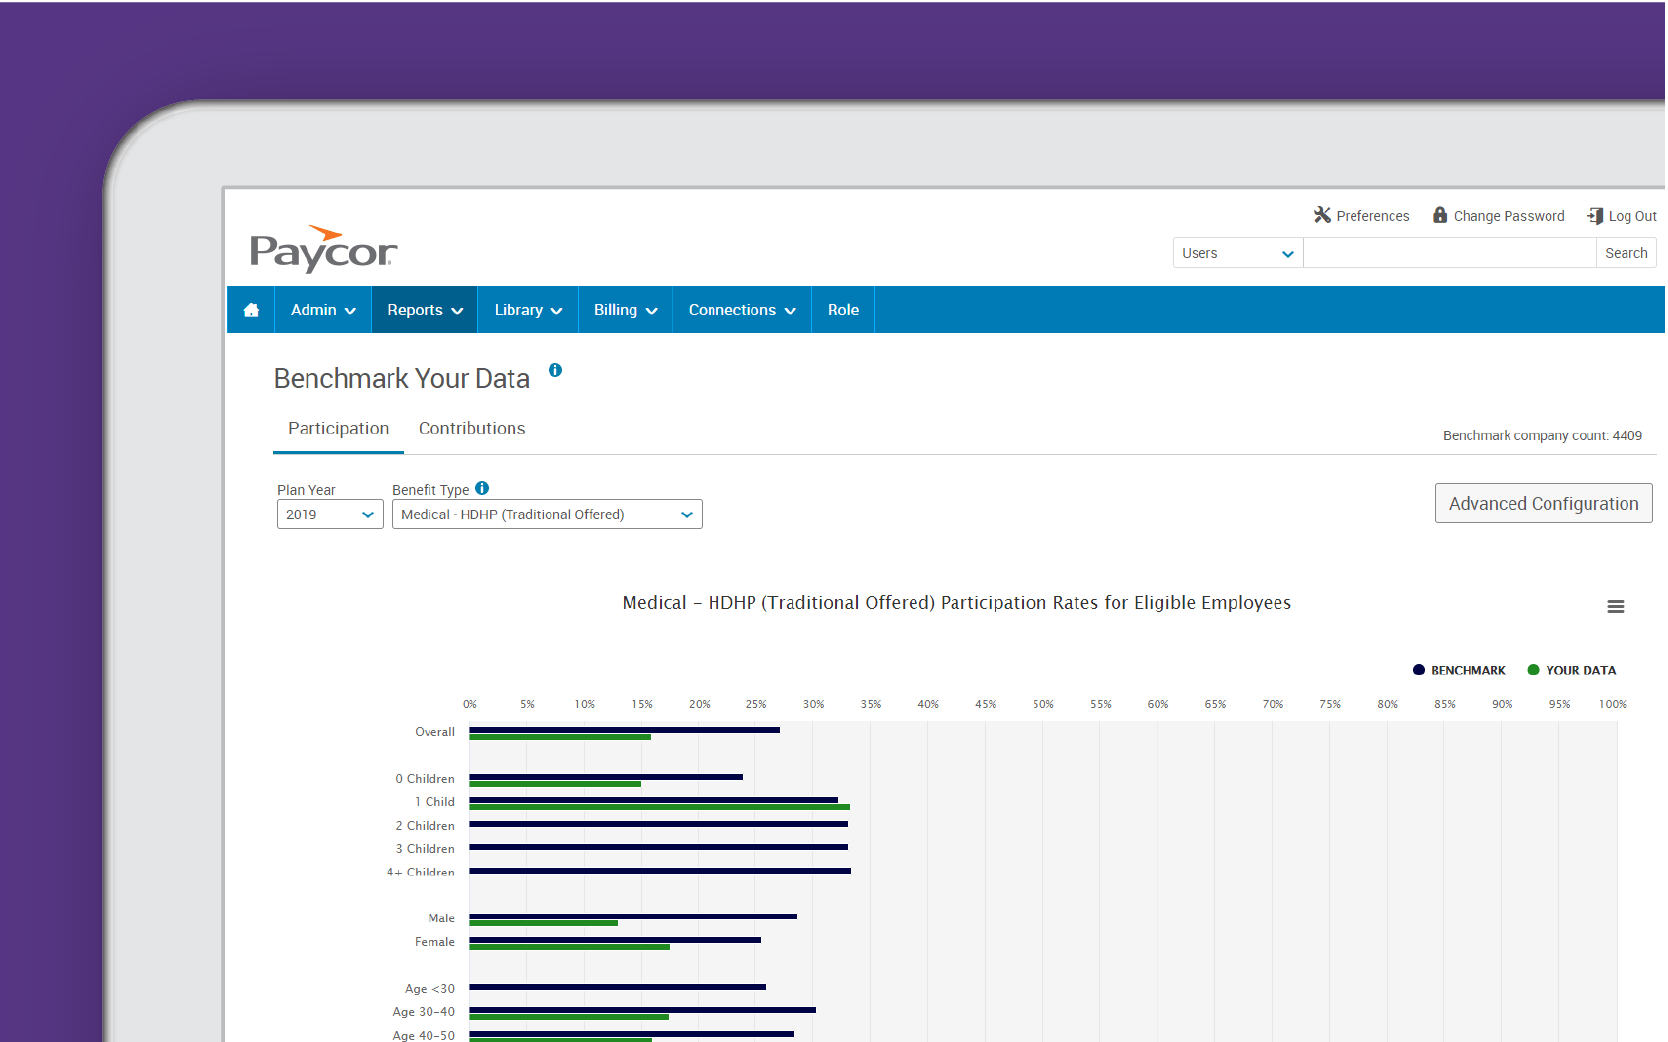 Corner of tablet showing Paycor benefits data against purple background